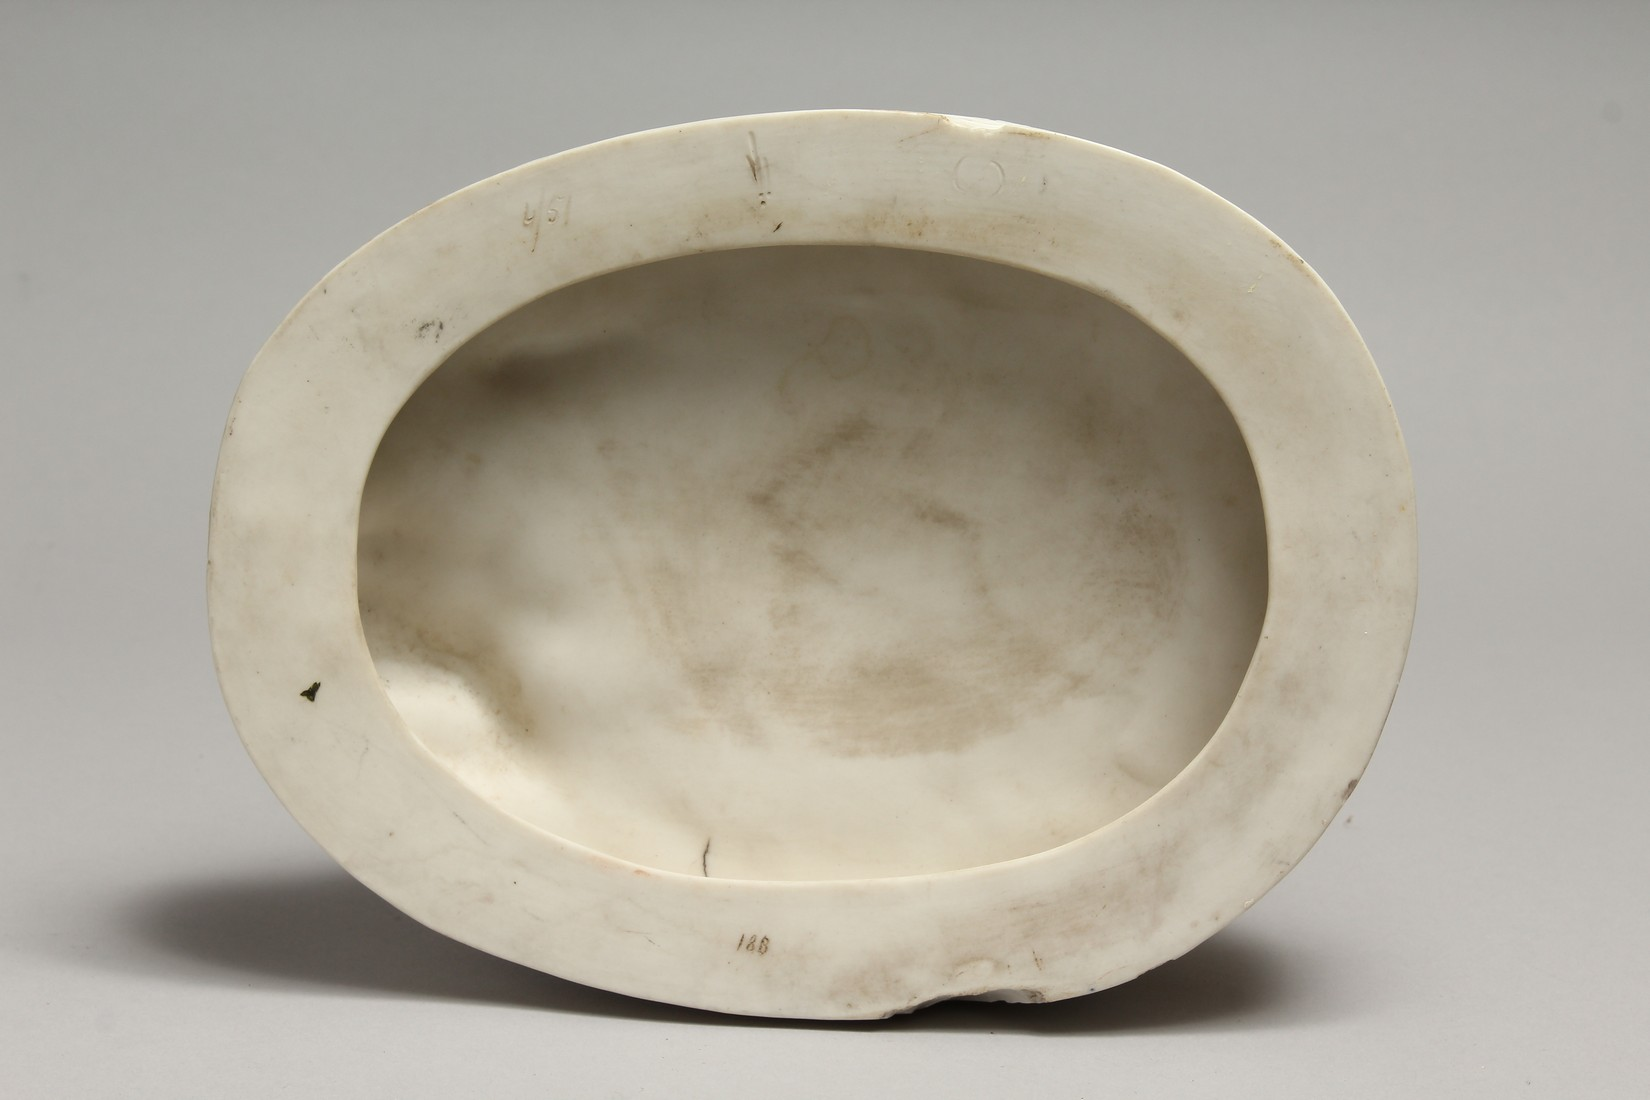 """A LATE 19TH CENTURY PARIAN WARE GROUP """"NAOMI AND HER DAUGHTER IN LAW"""". 13 ins high. - Image 8 of 8"""